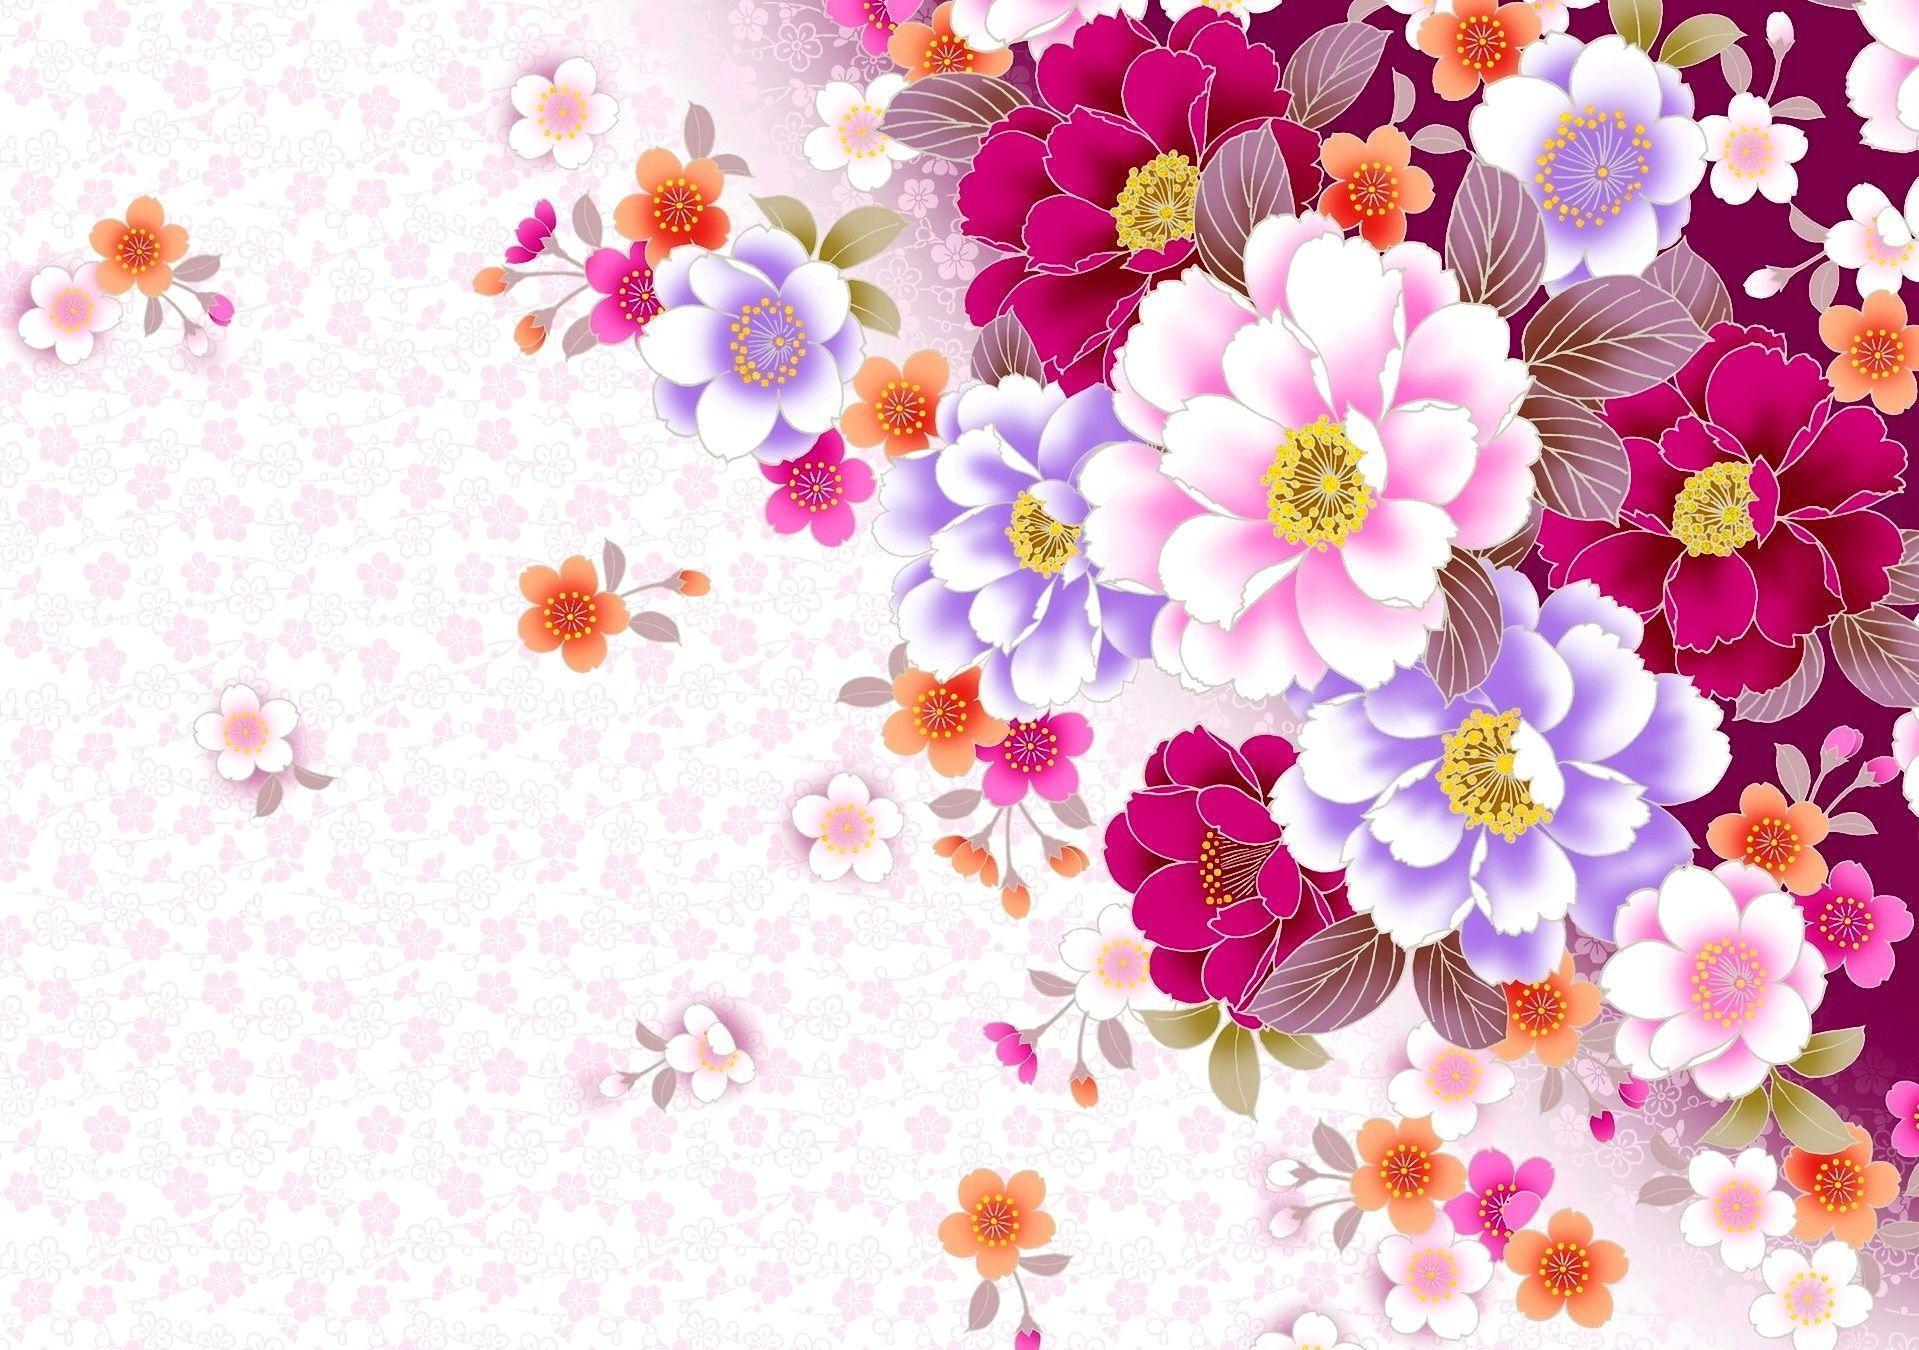 colorful floral background patterns - photo #36